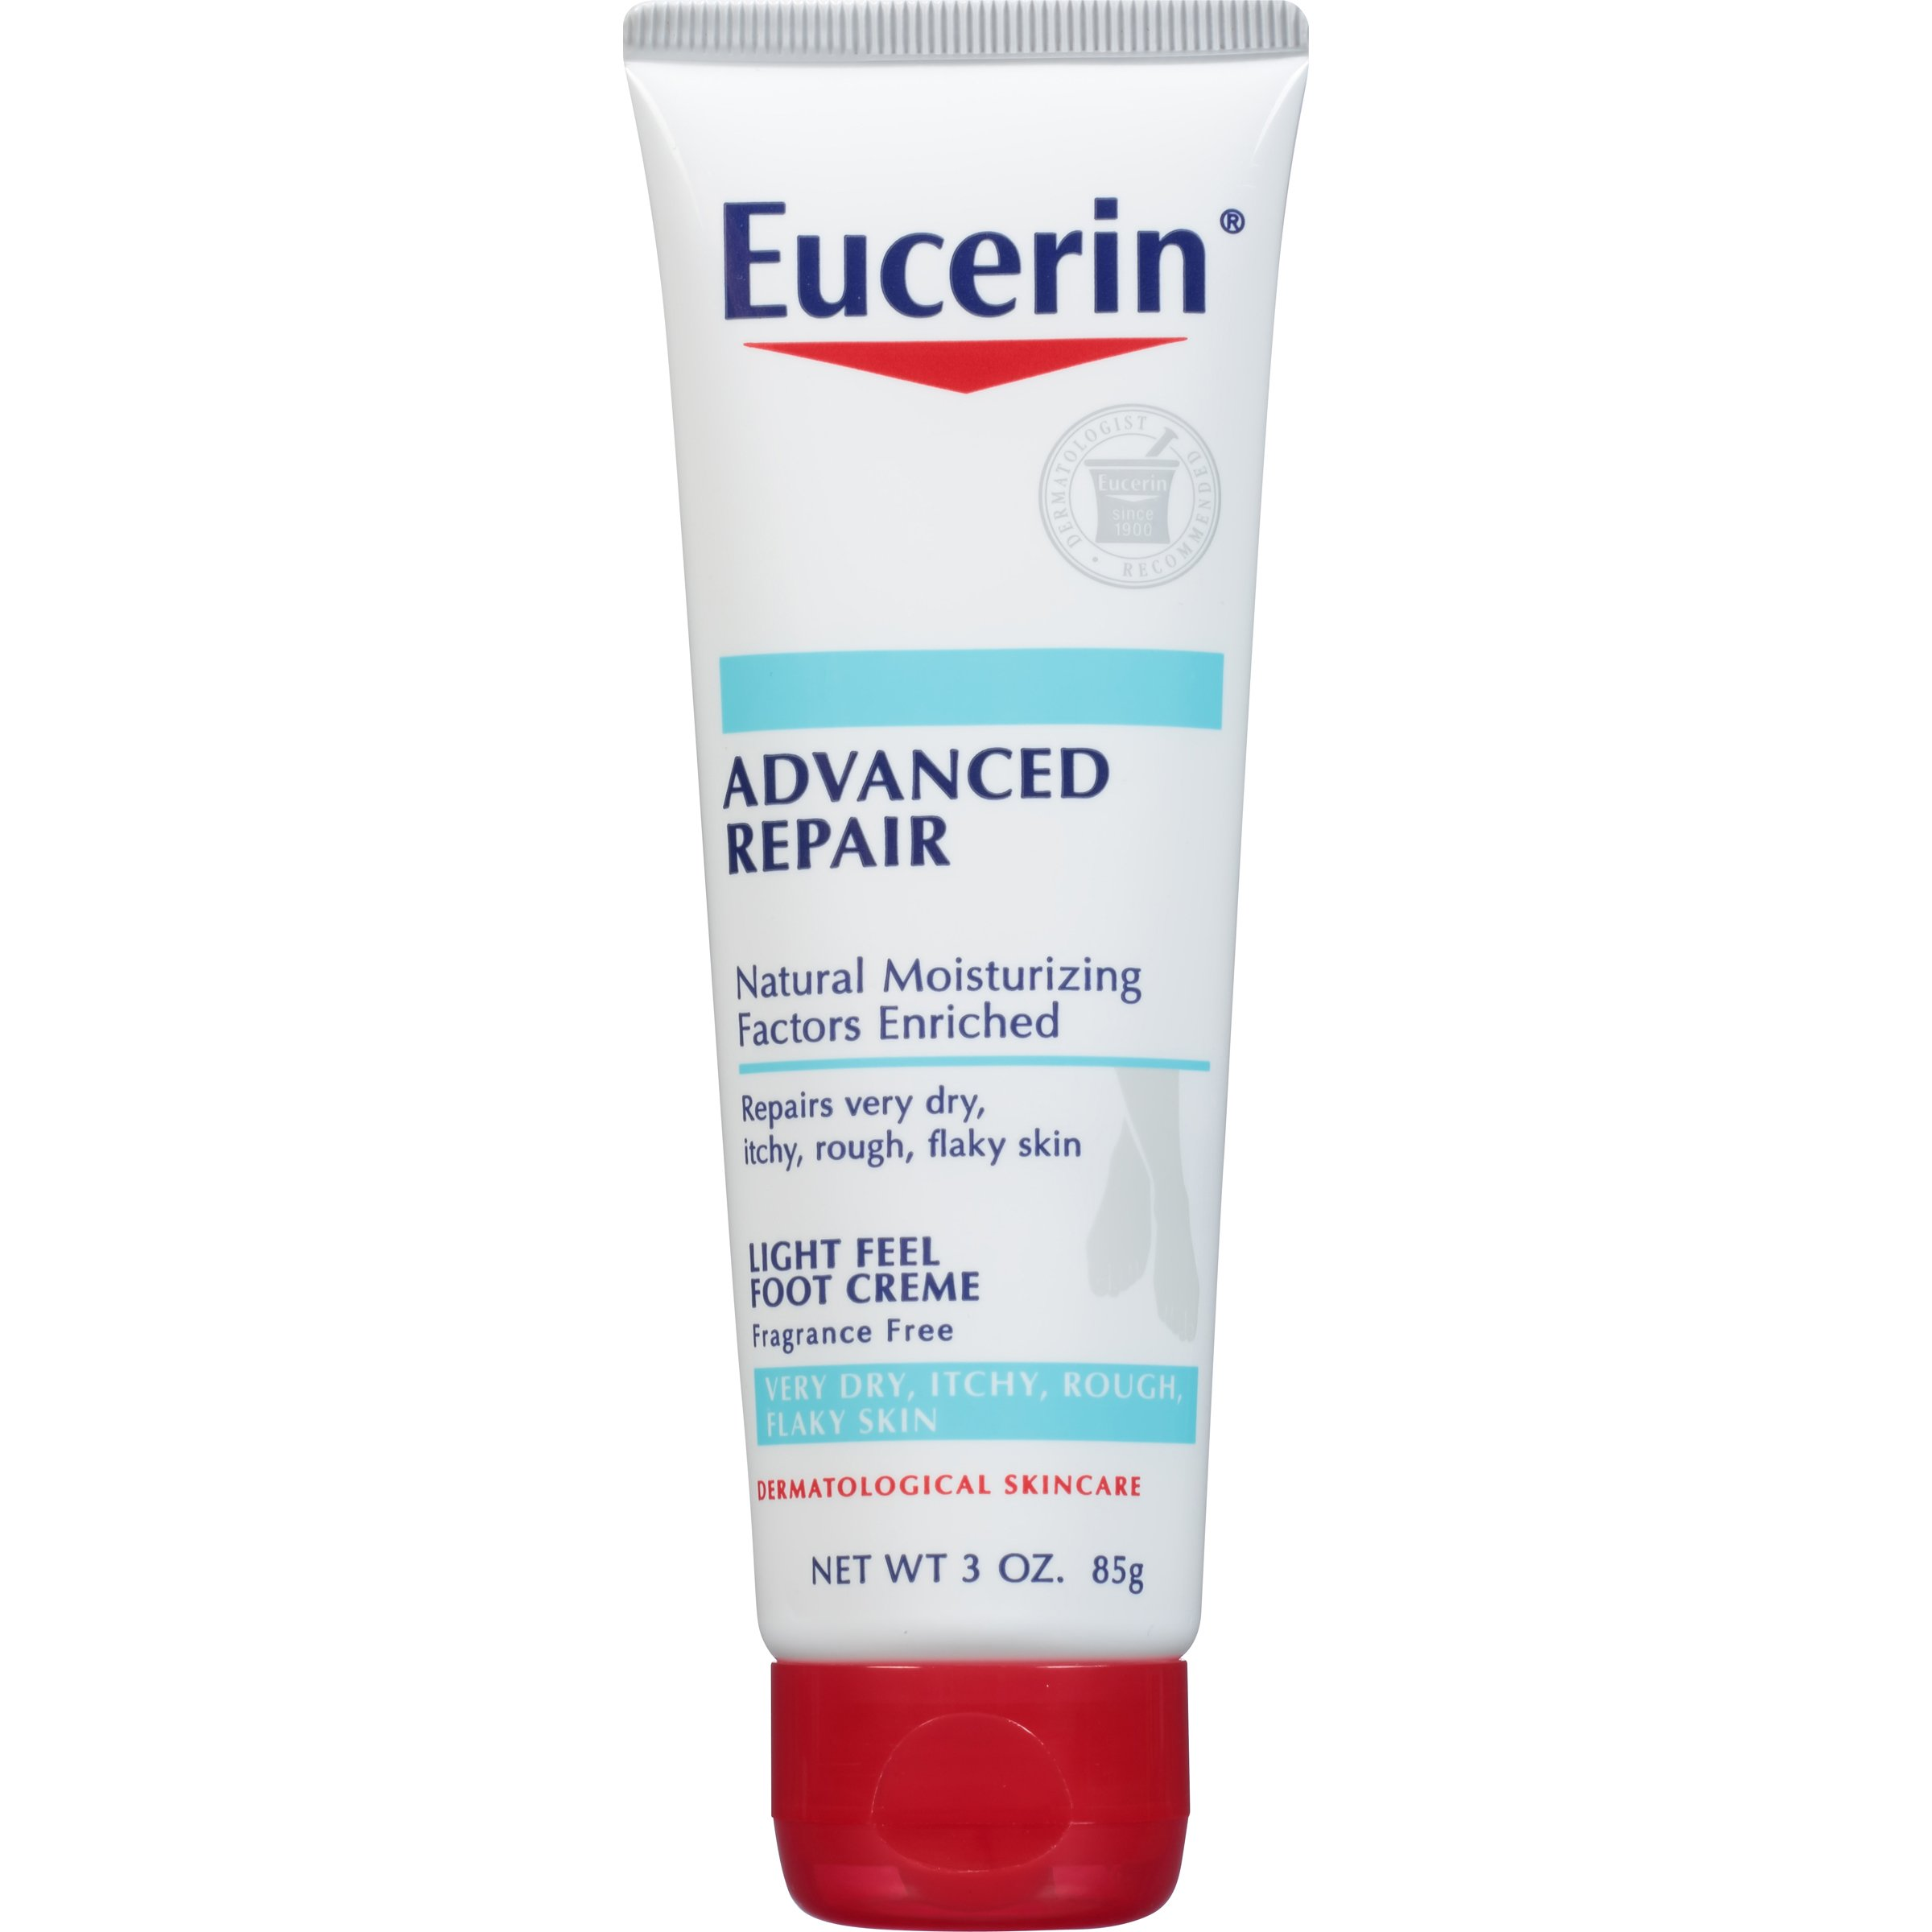 Eucerin Advanced Repair Light Feel Foot Creme 3 Ounce (Pack of 3) (Packaging May Vary)